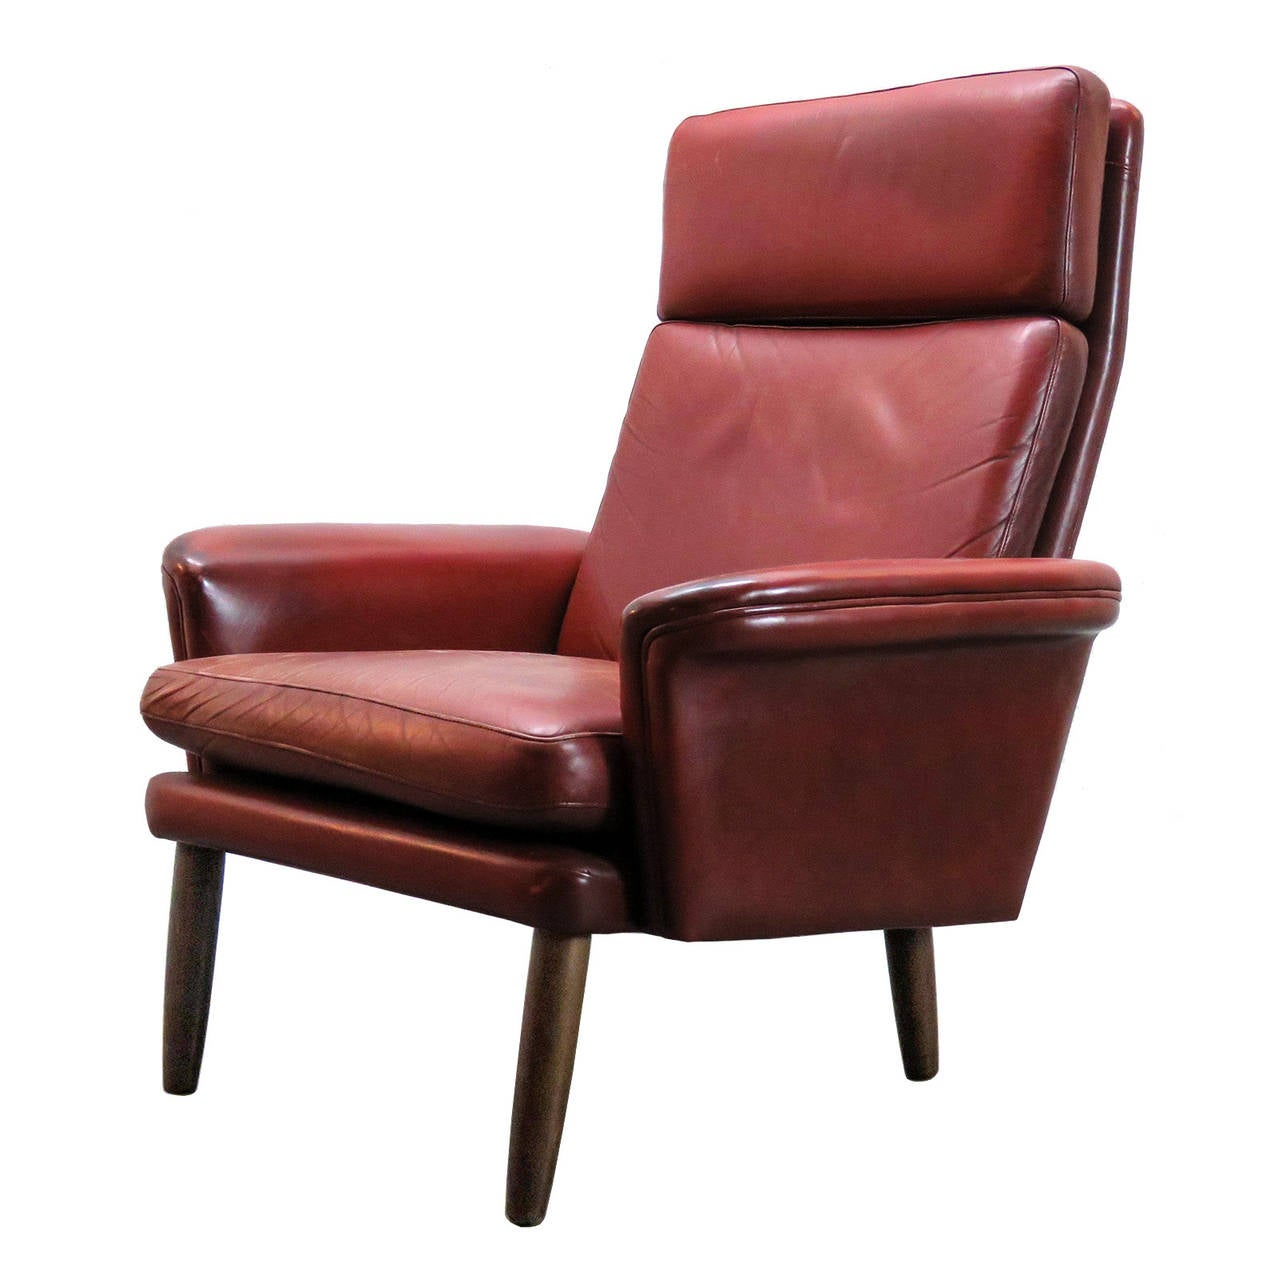 danish high back leather lounge chair for sale at stdibs - danish high back leather lounge chair